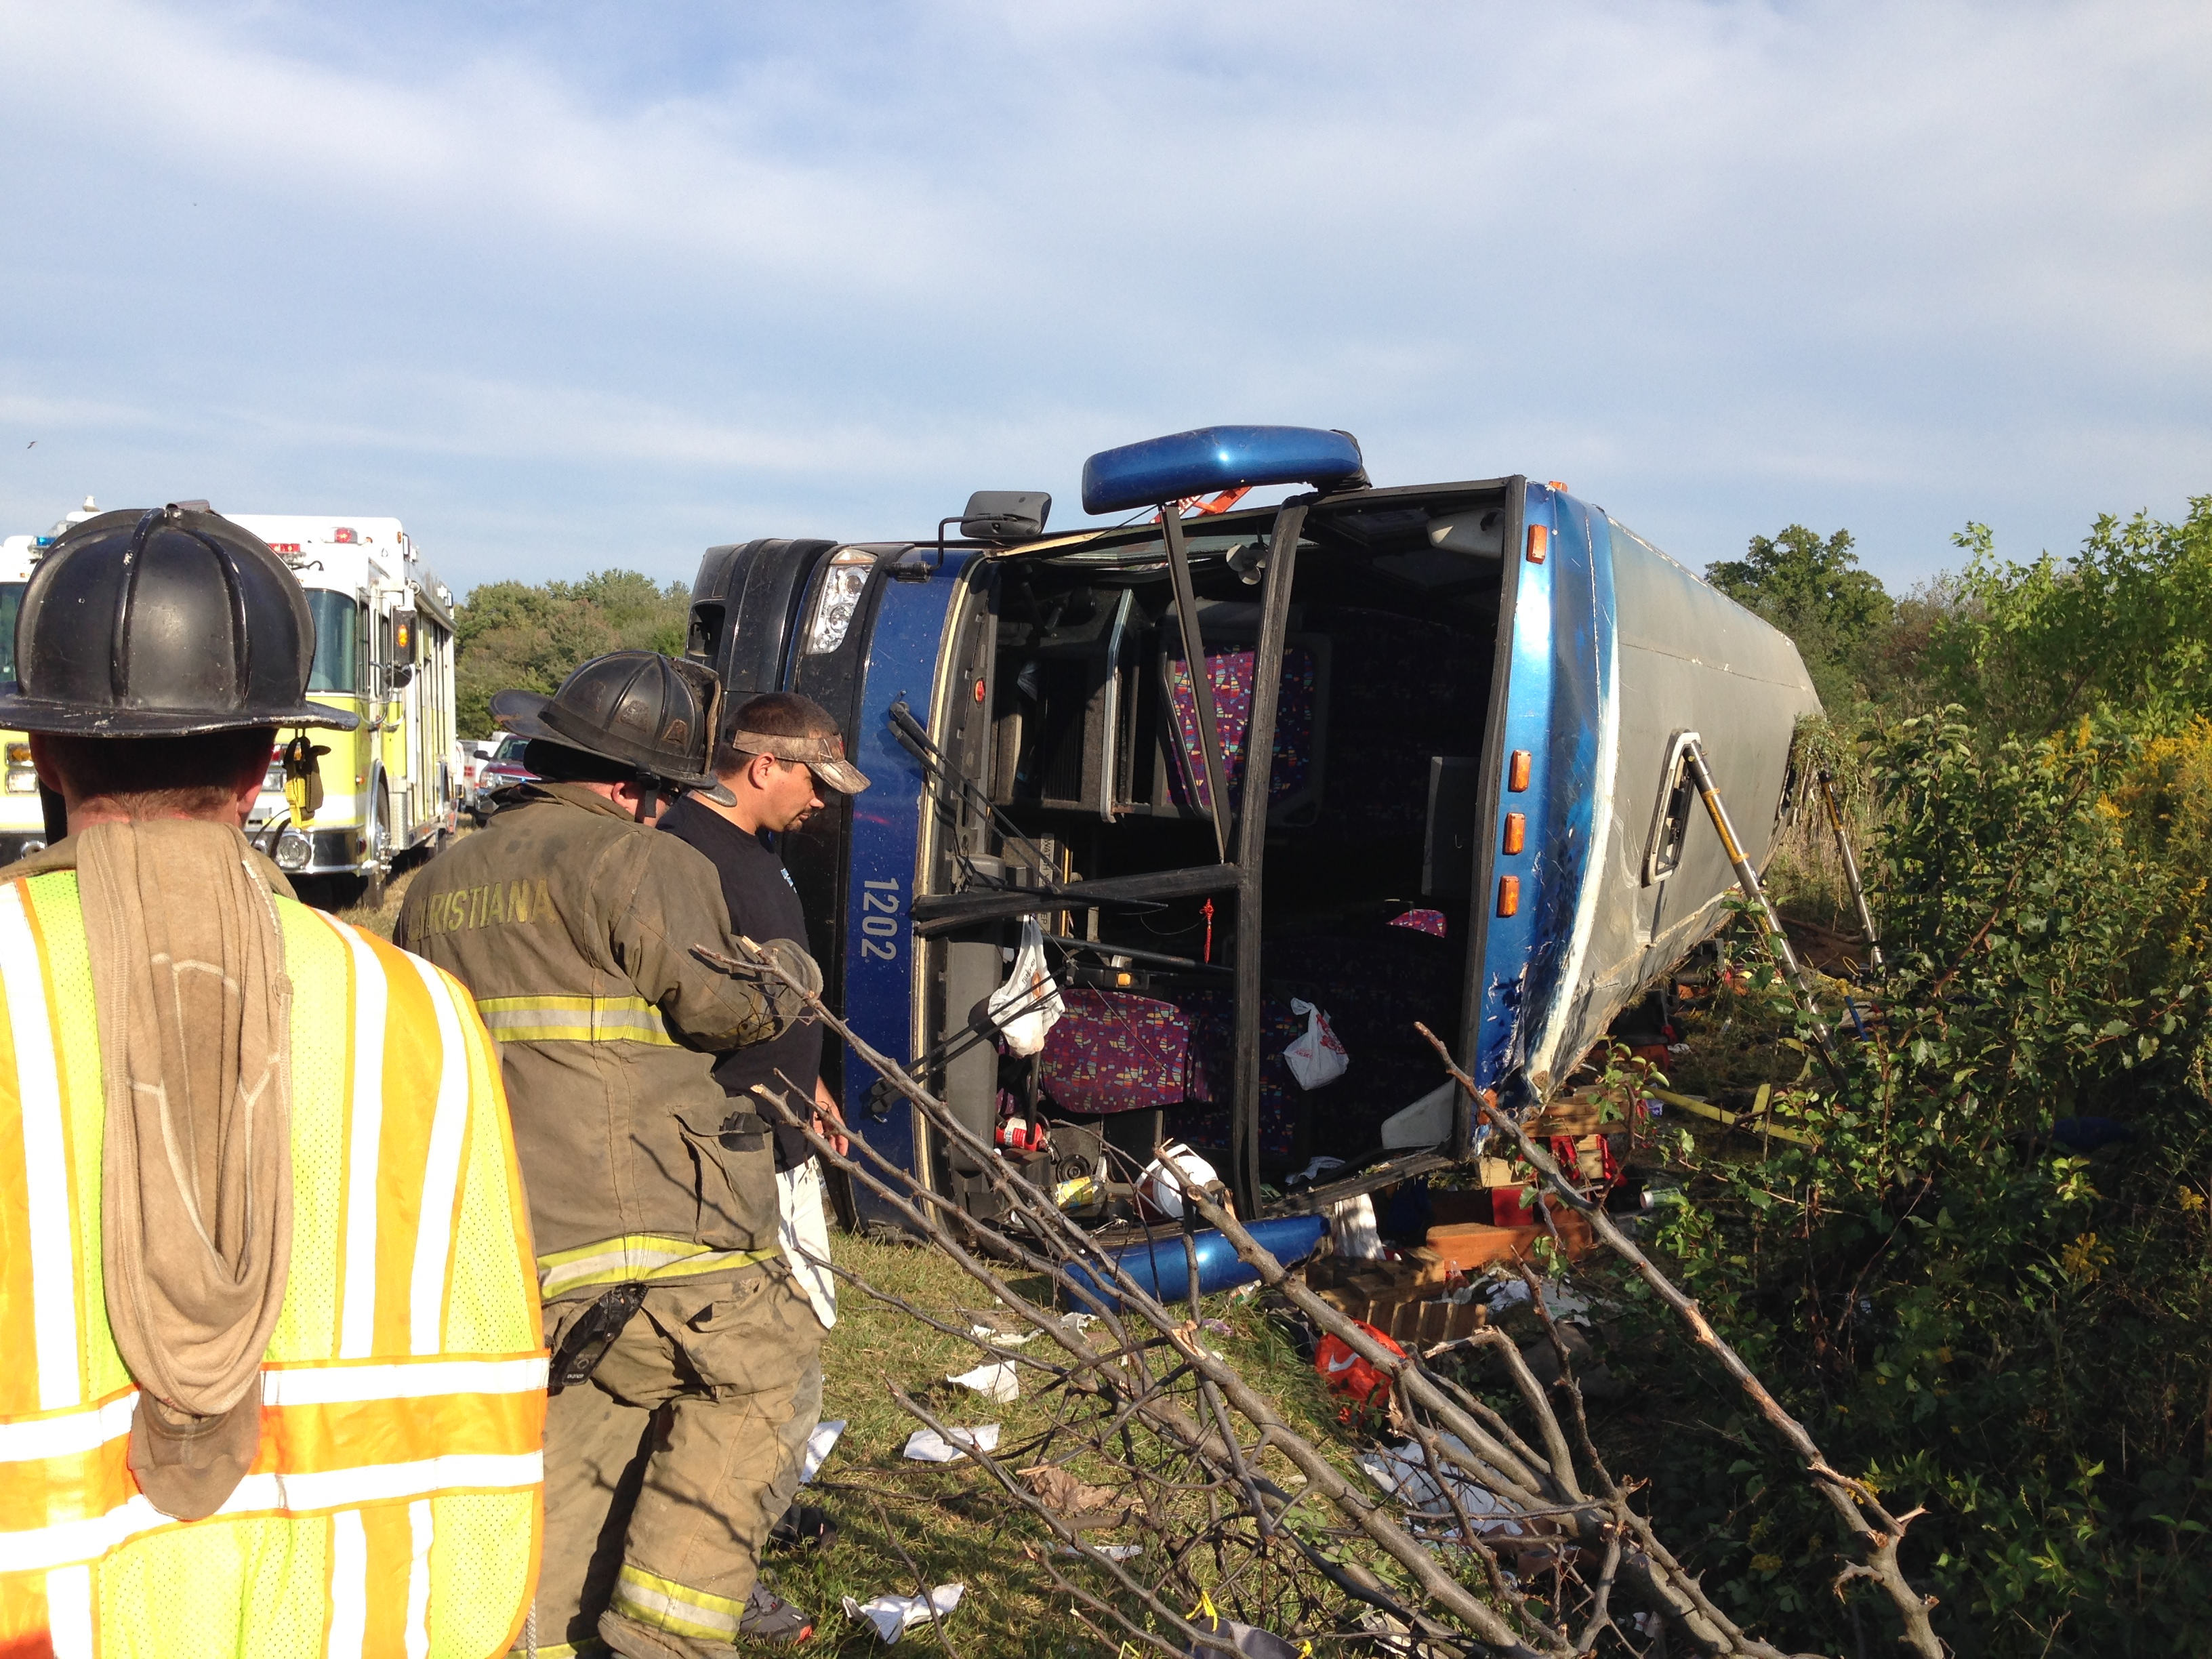 Passengers from a tour bus are treated for injuries near the overturned bus at the Tybouts Corner on ramp from southbound Del. 1 to Red Lion Road in Bear, Del. on Sept. 21, 2014.